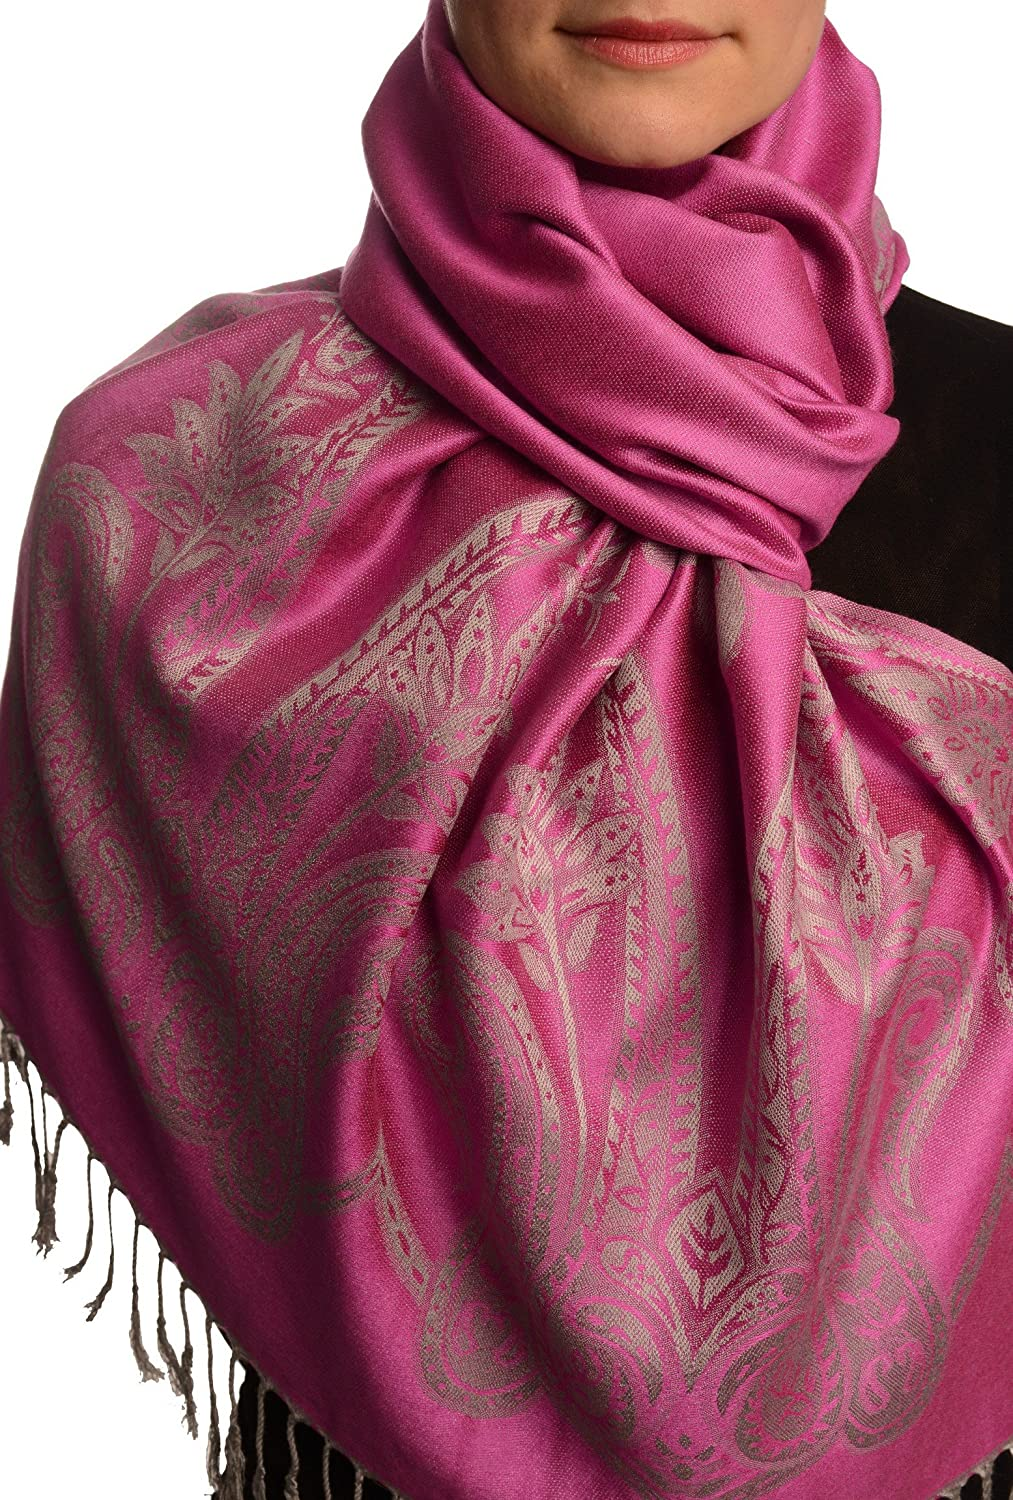 Large Paisley On Pink Pashmina Feel With Tassels - Scarf